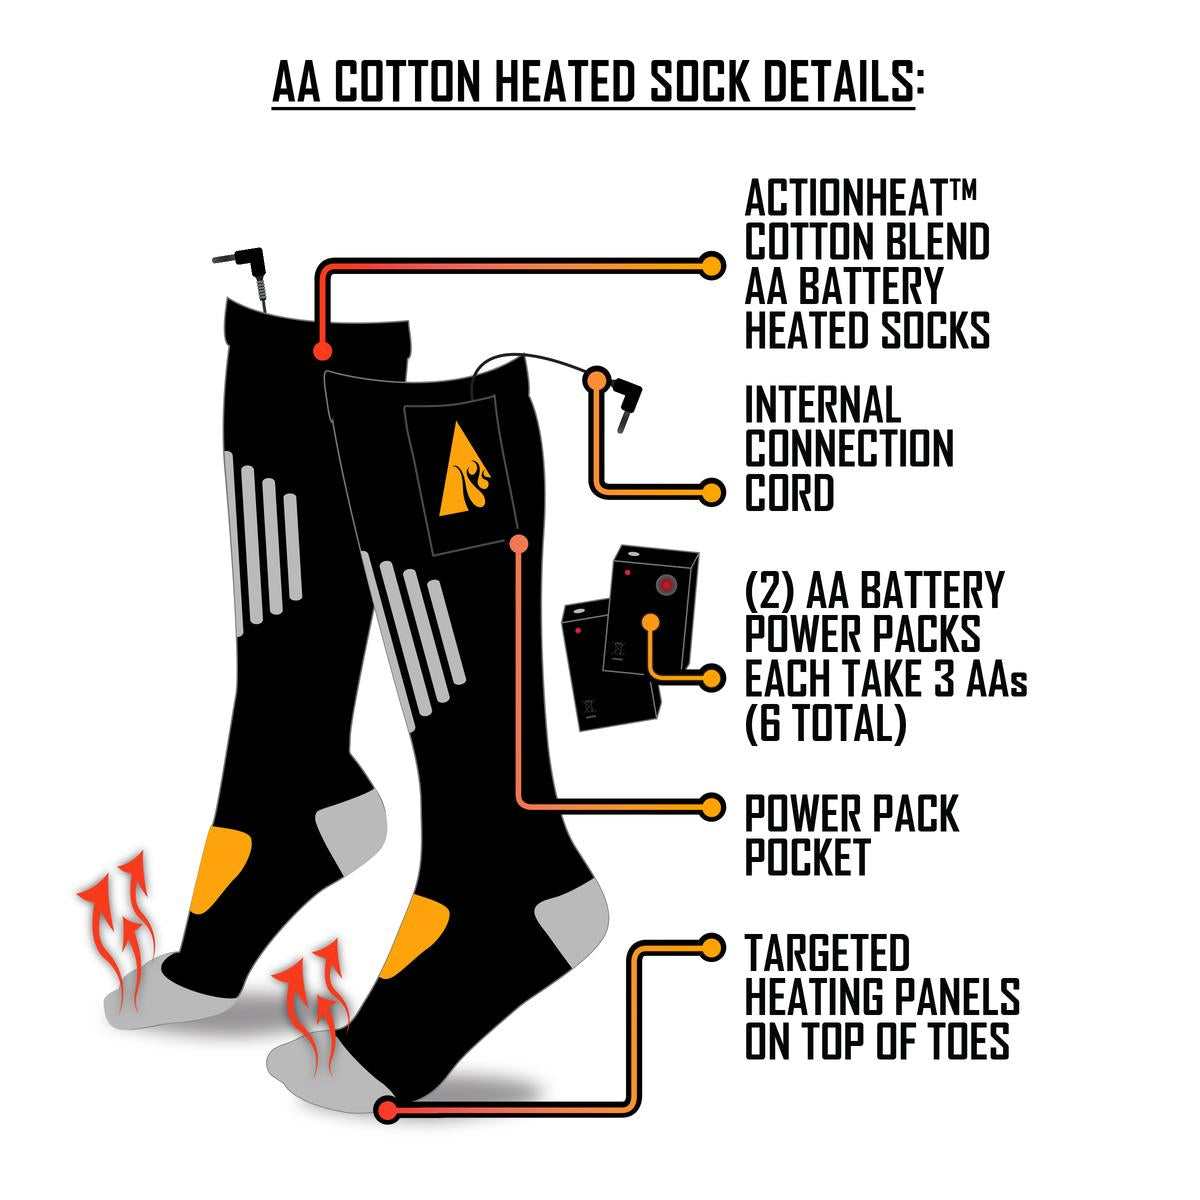 ActionHeat AA Battery Heated Socks - Cotton - Right